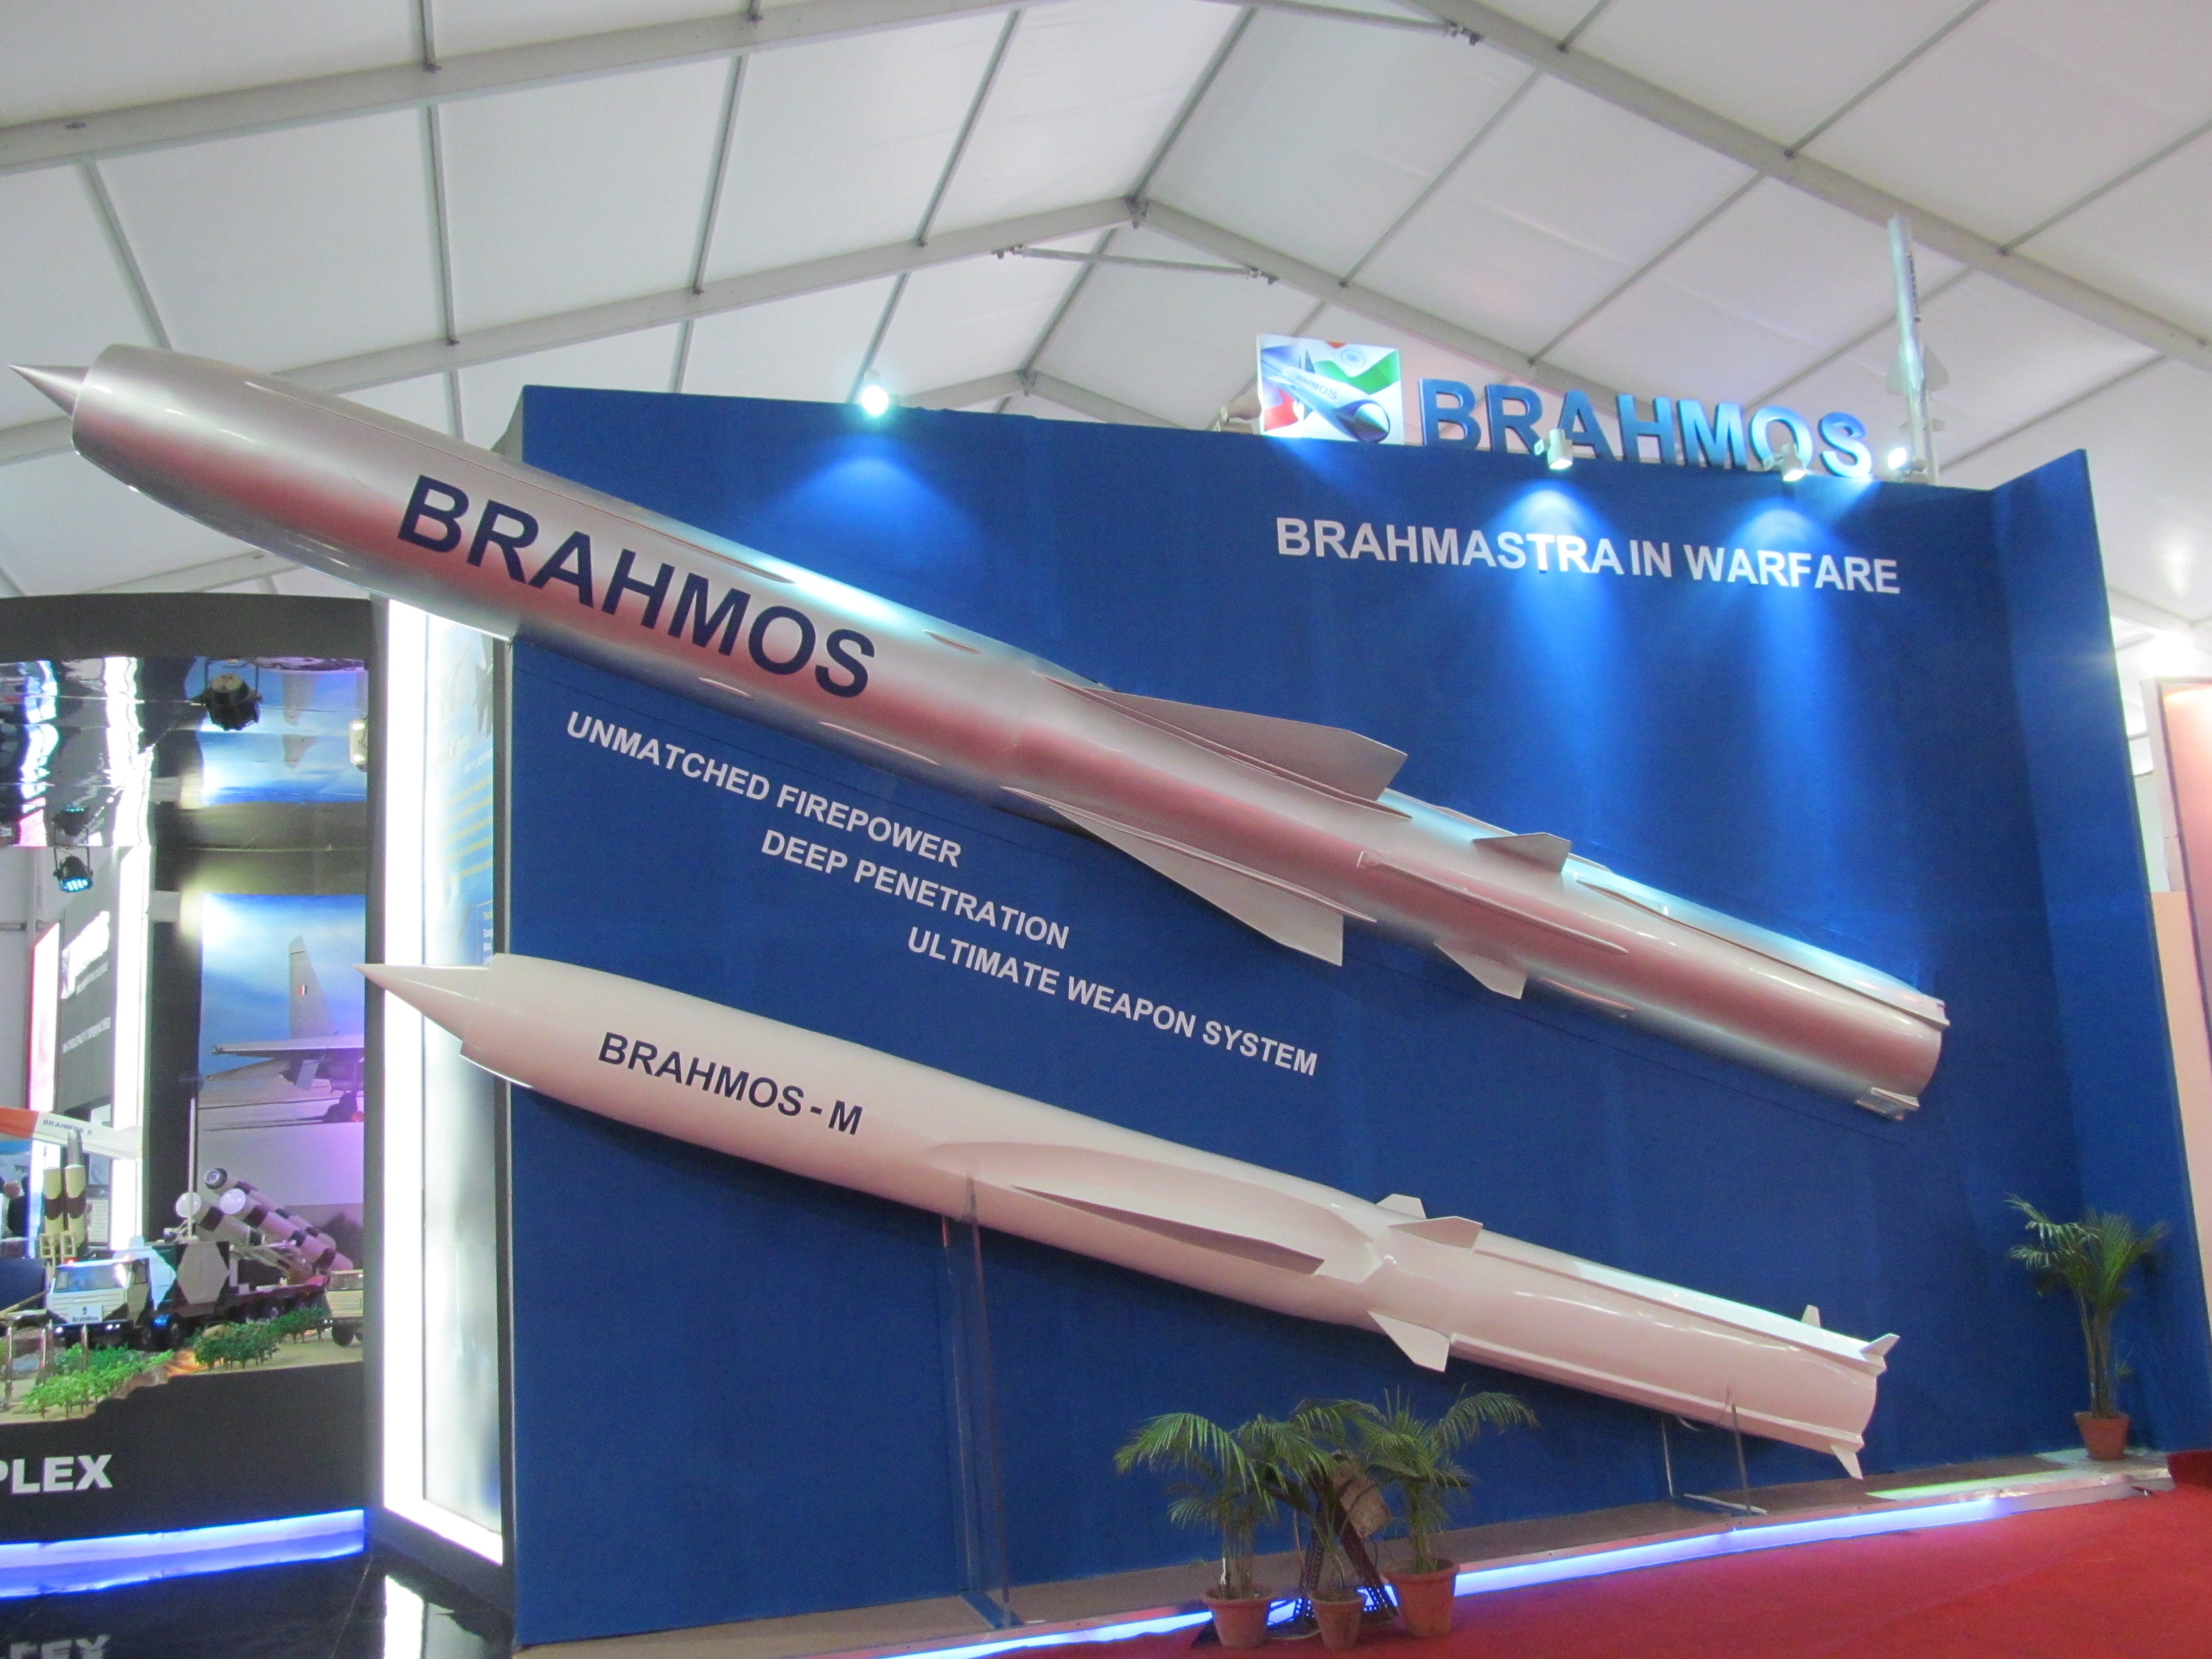 Indian Navy MiG-29Ks Brahmos_and_Brahmos-M_size_comparison